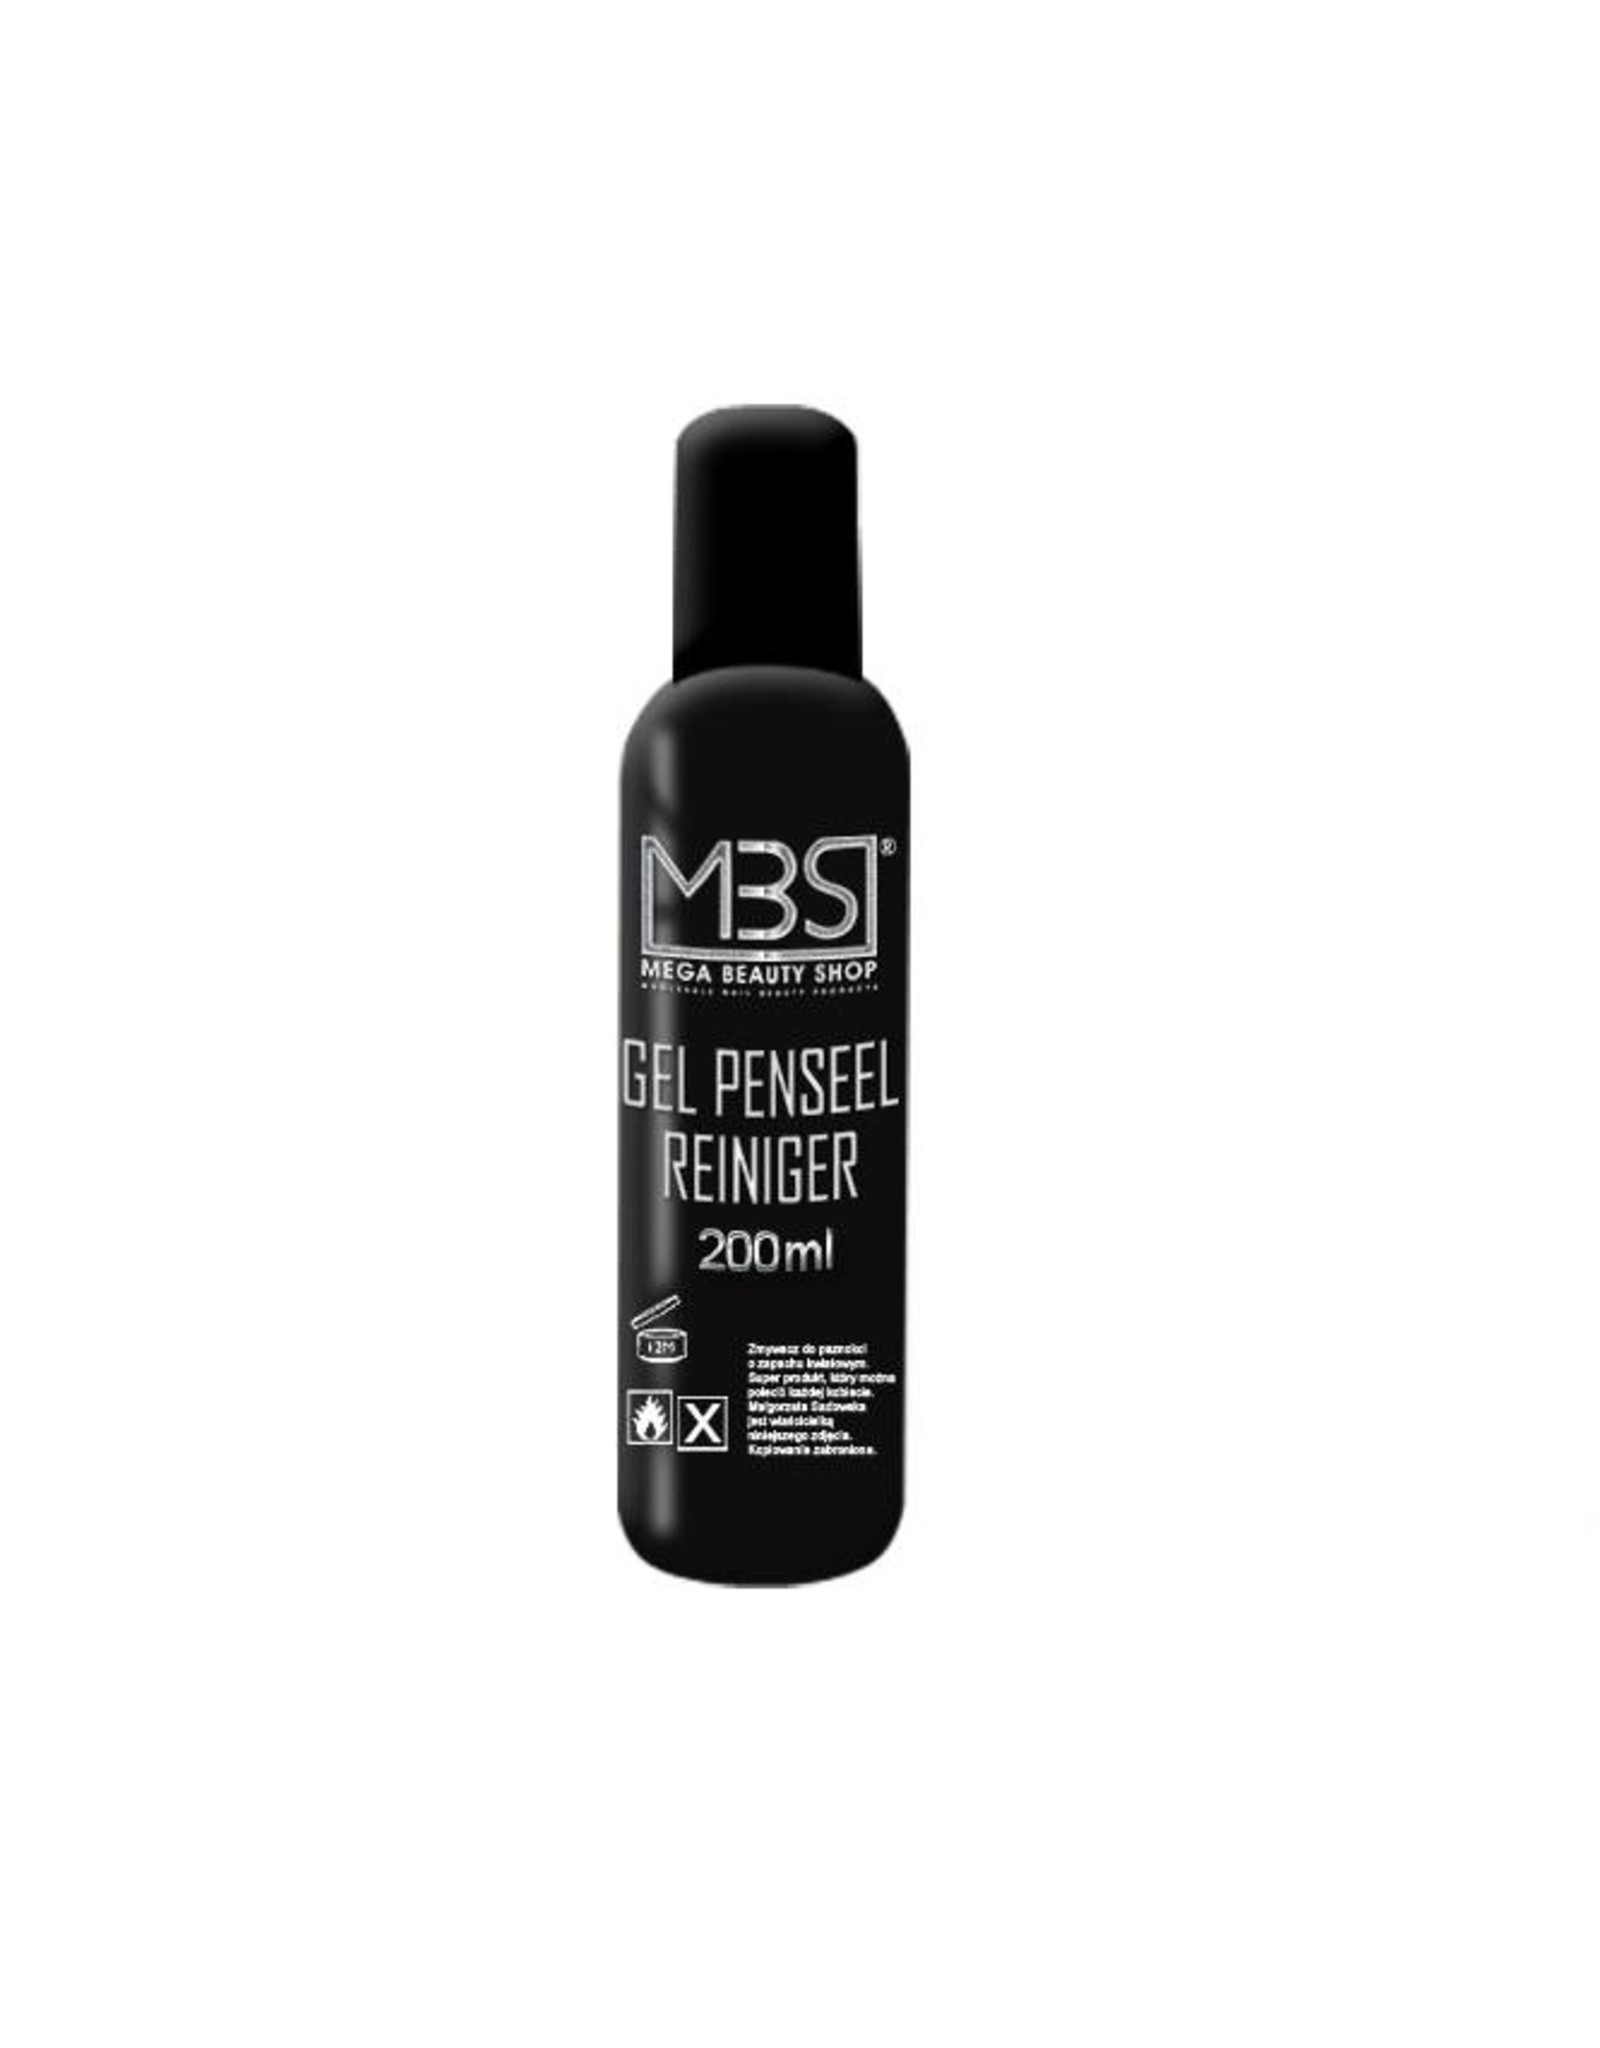 Mega Beauty Shop® Gel penseelreiniger (200 ml)  met amandelgeur